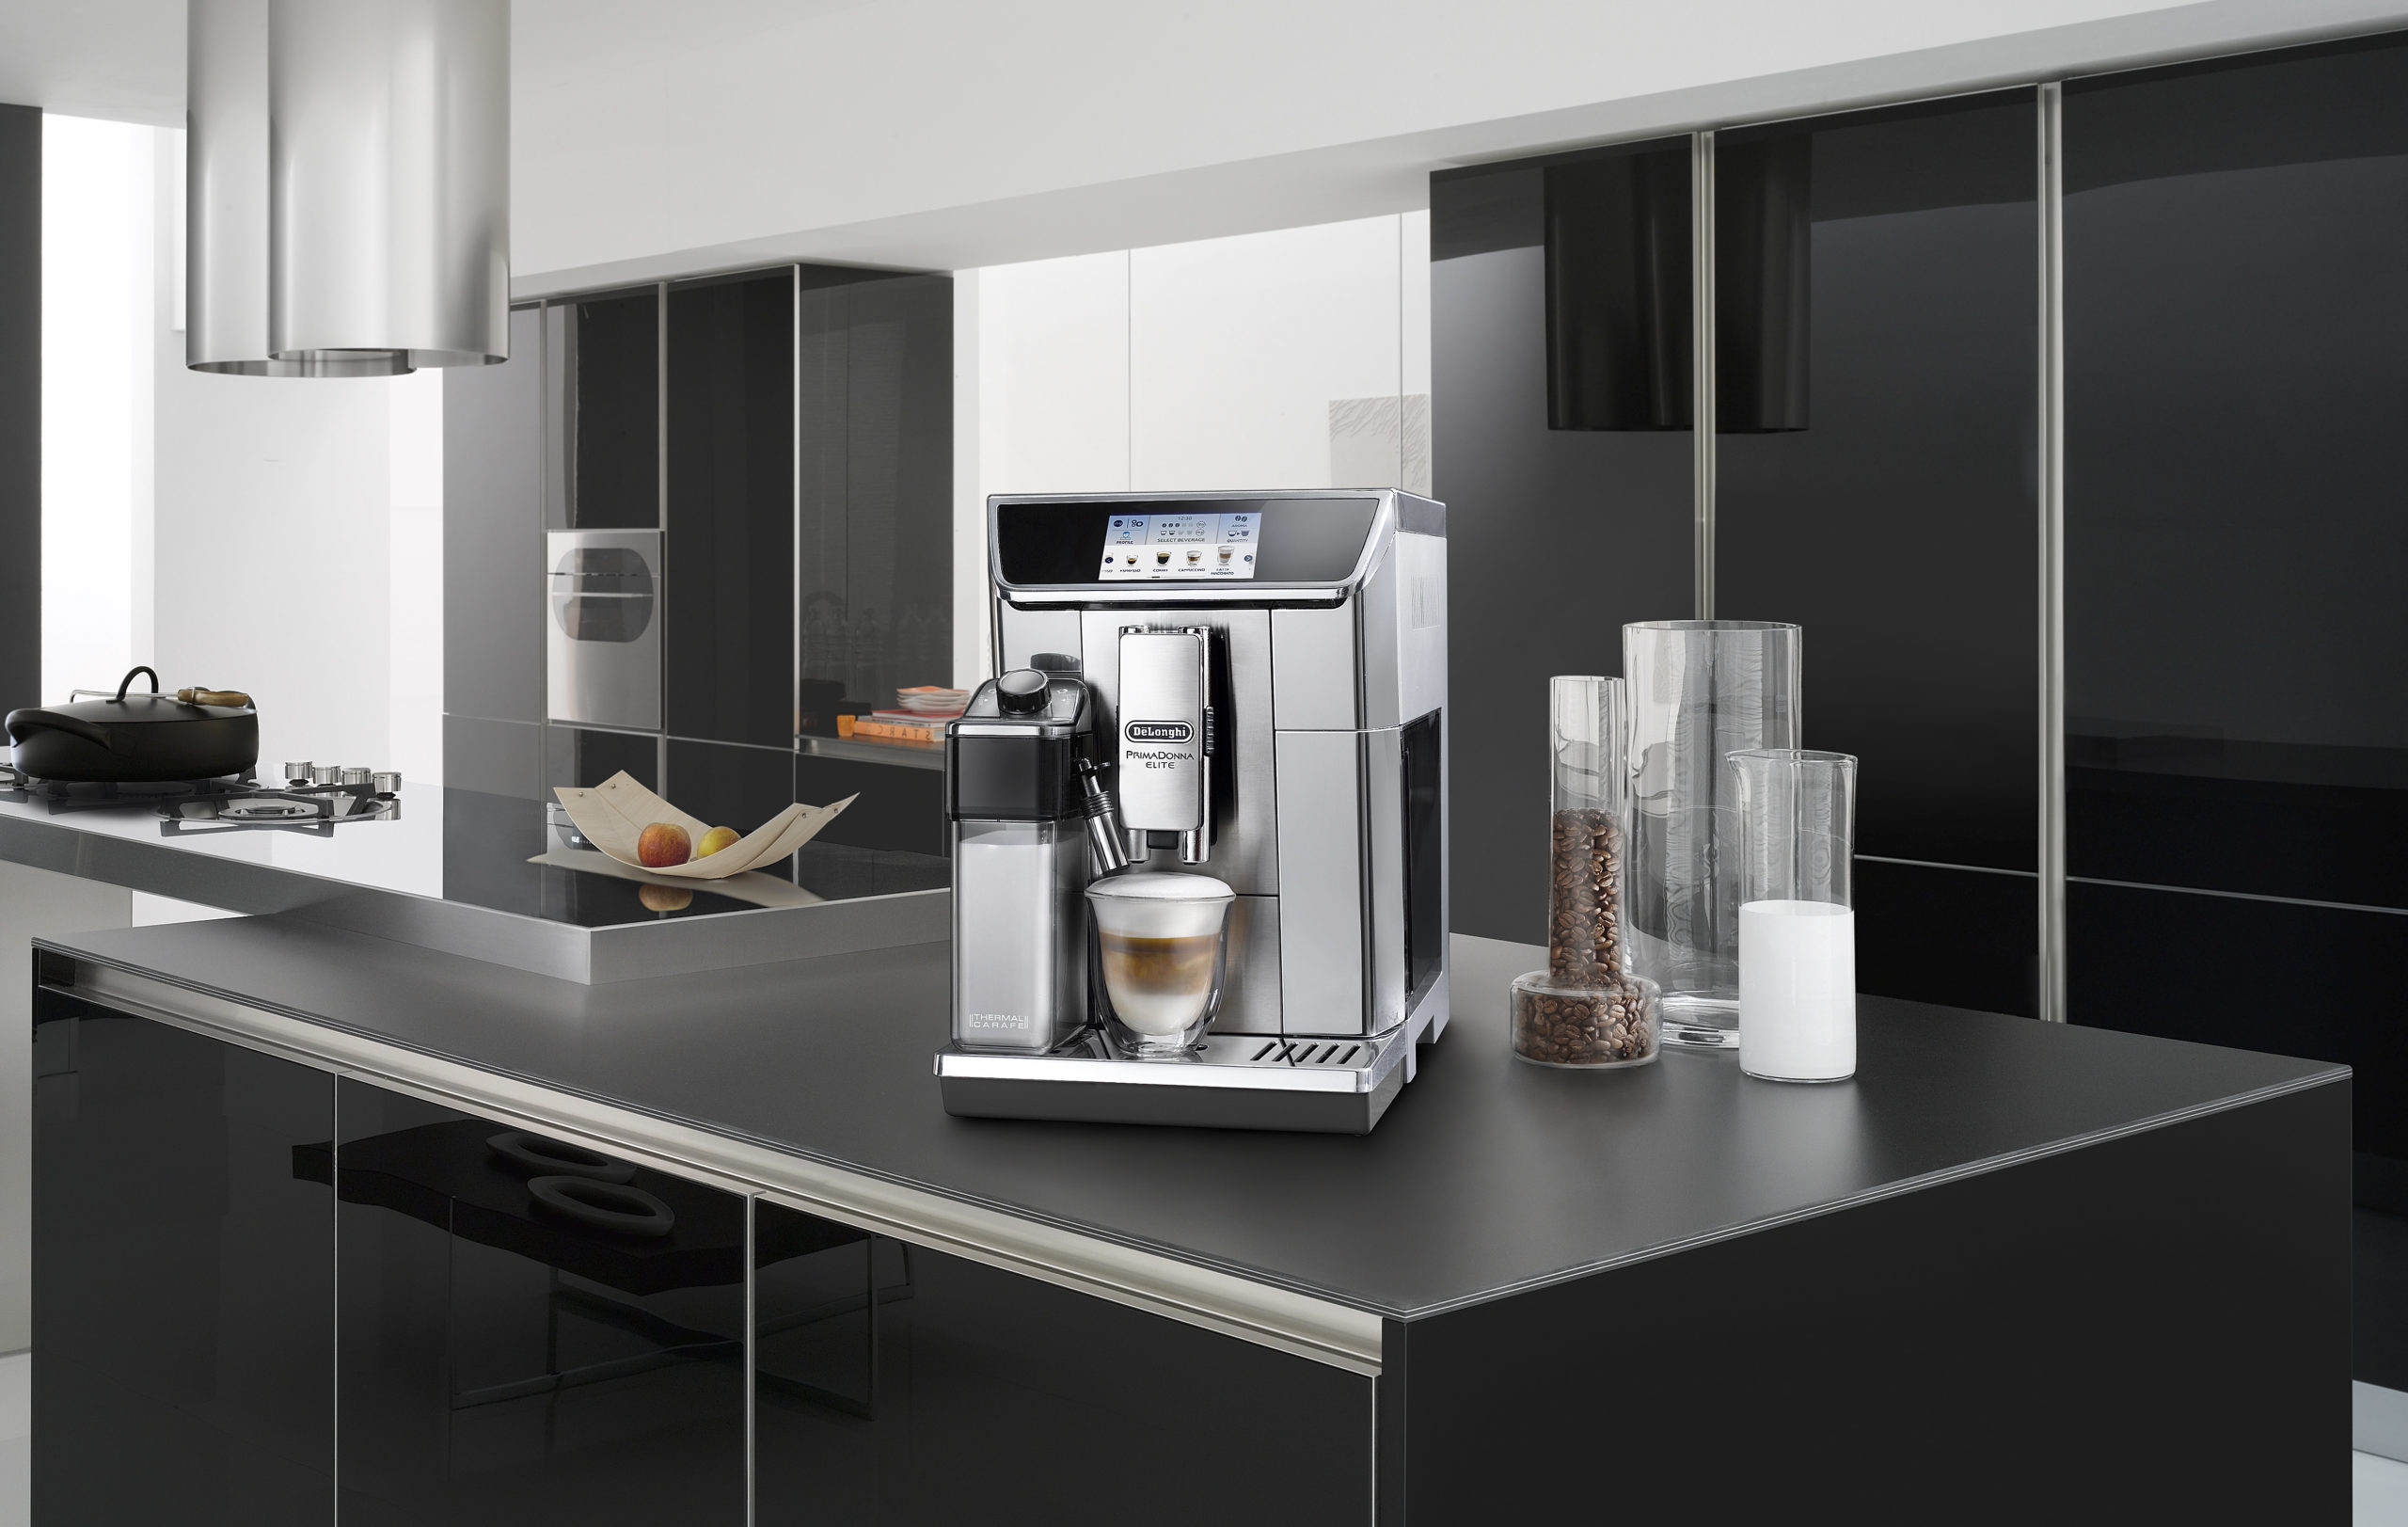 The De'Longhi PrimaDonna Elite coffee machine